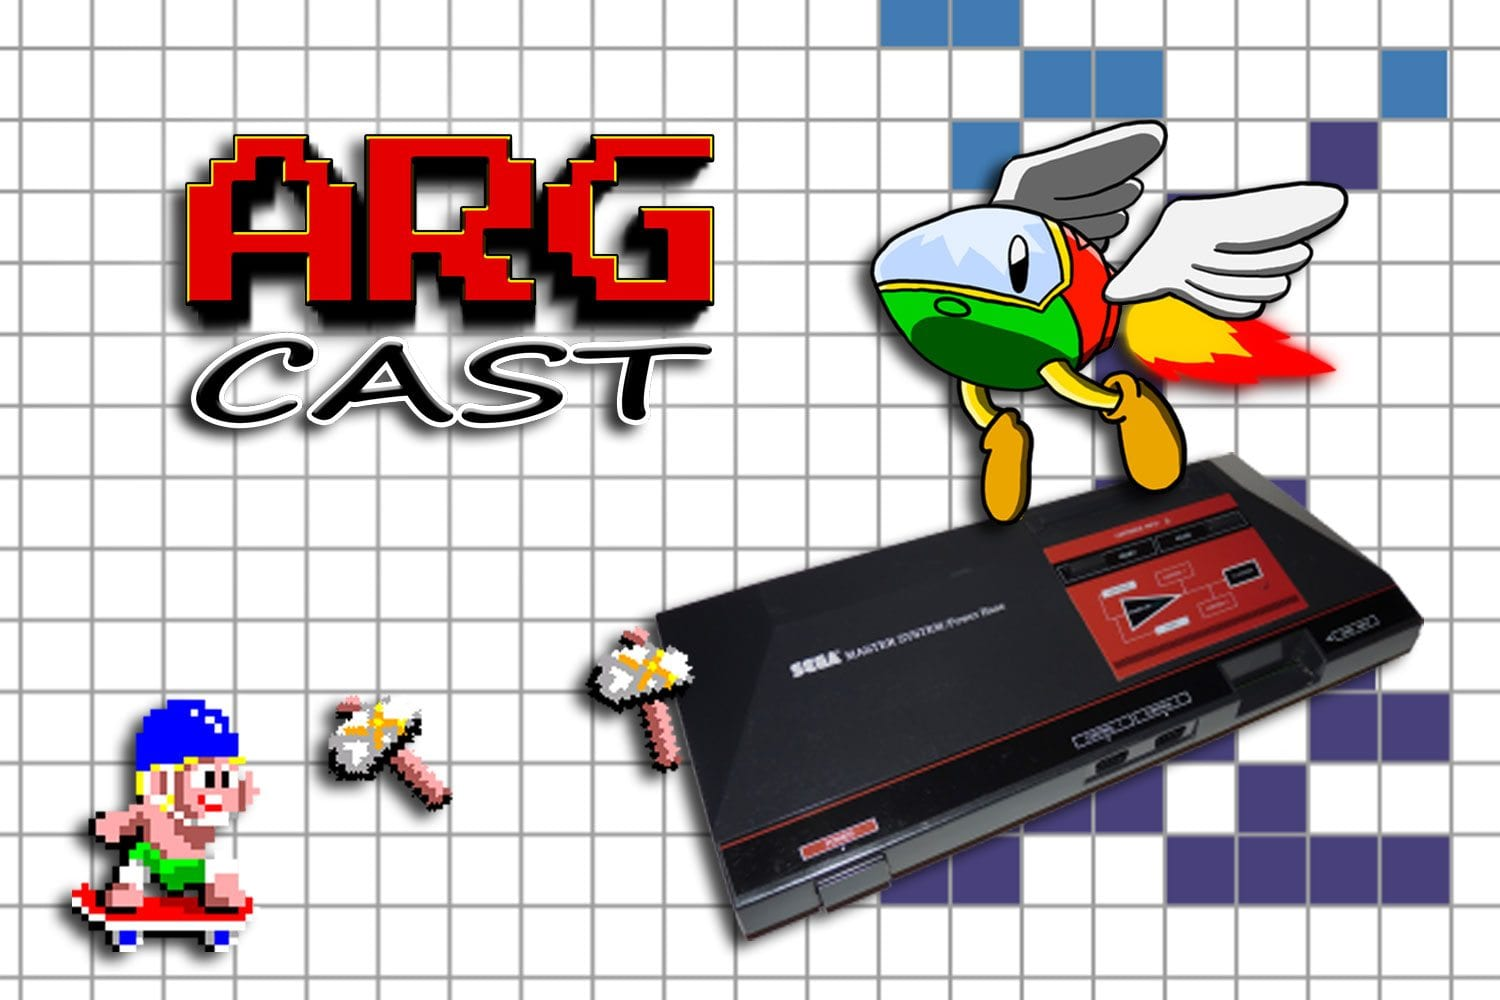 ARGcast #104: Mastering the Sega Master System with Joe Tavano